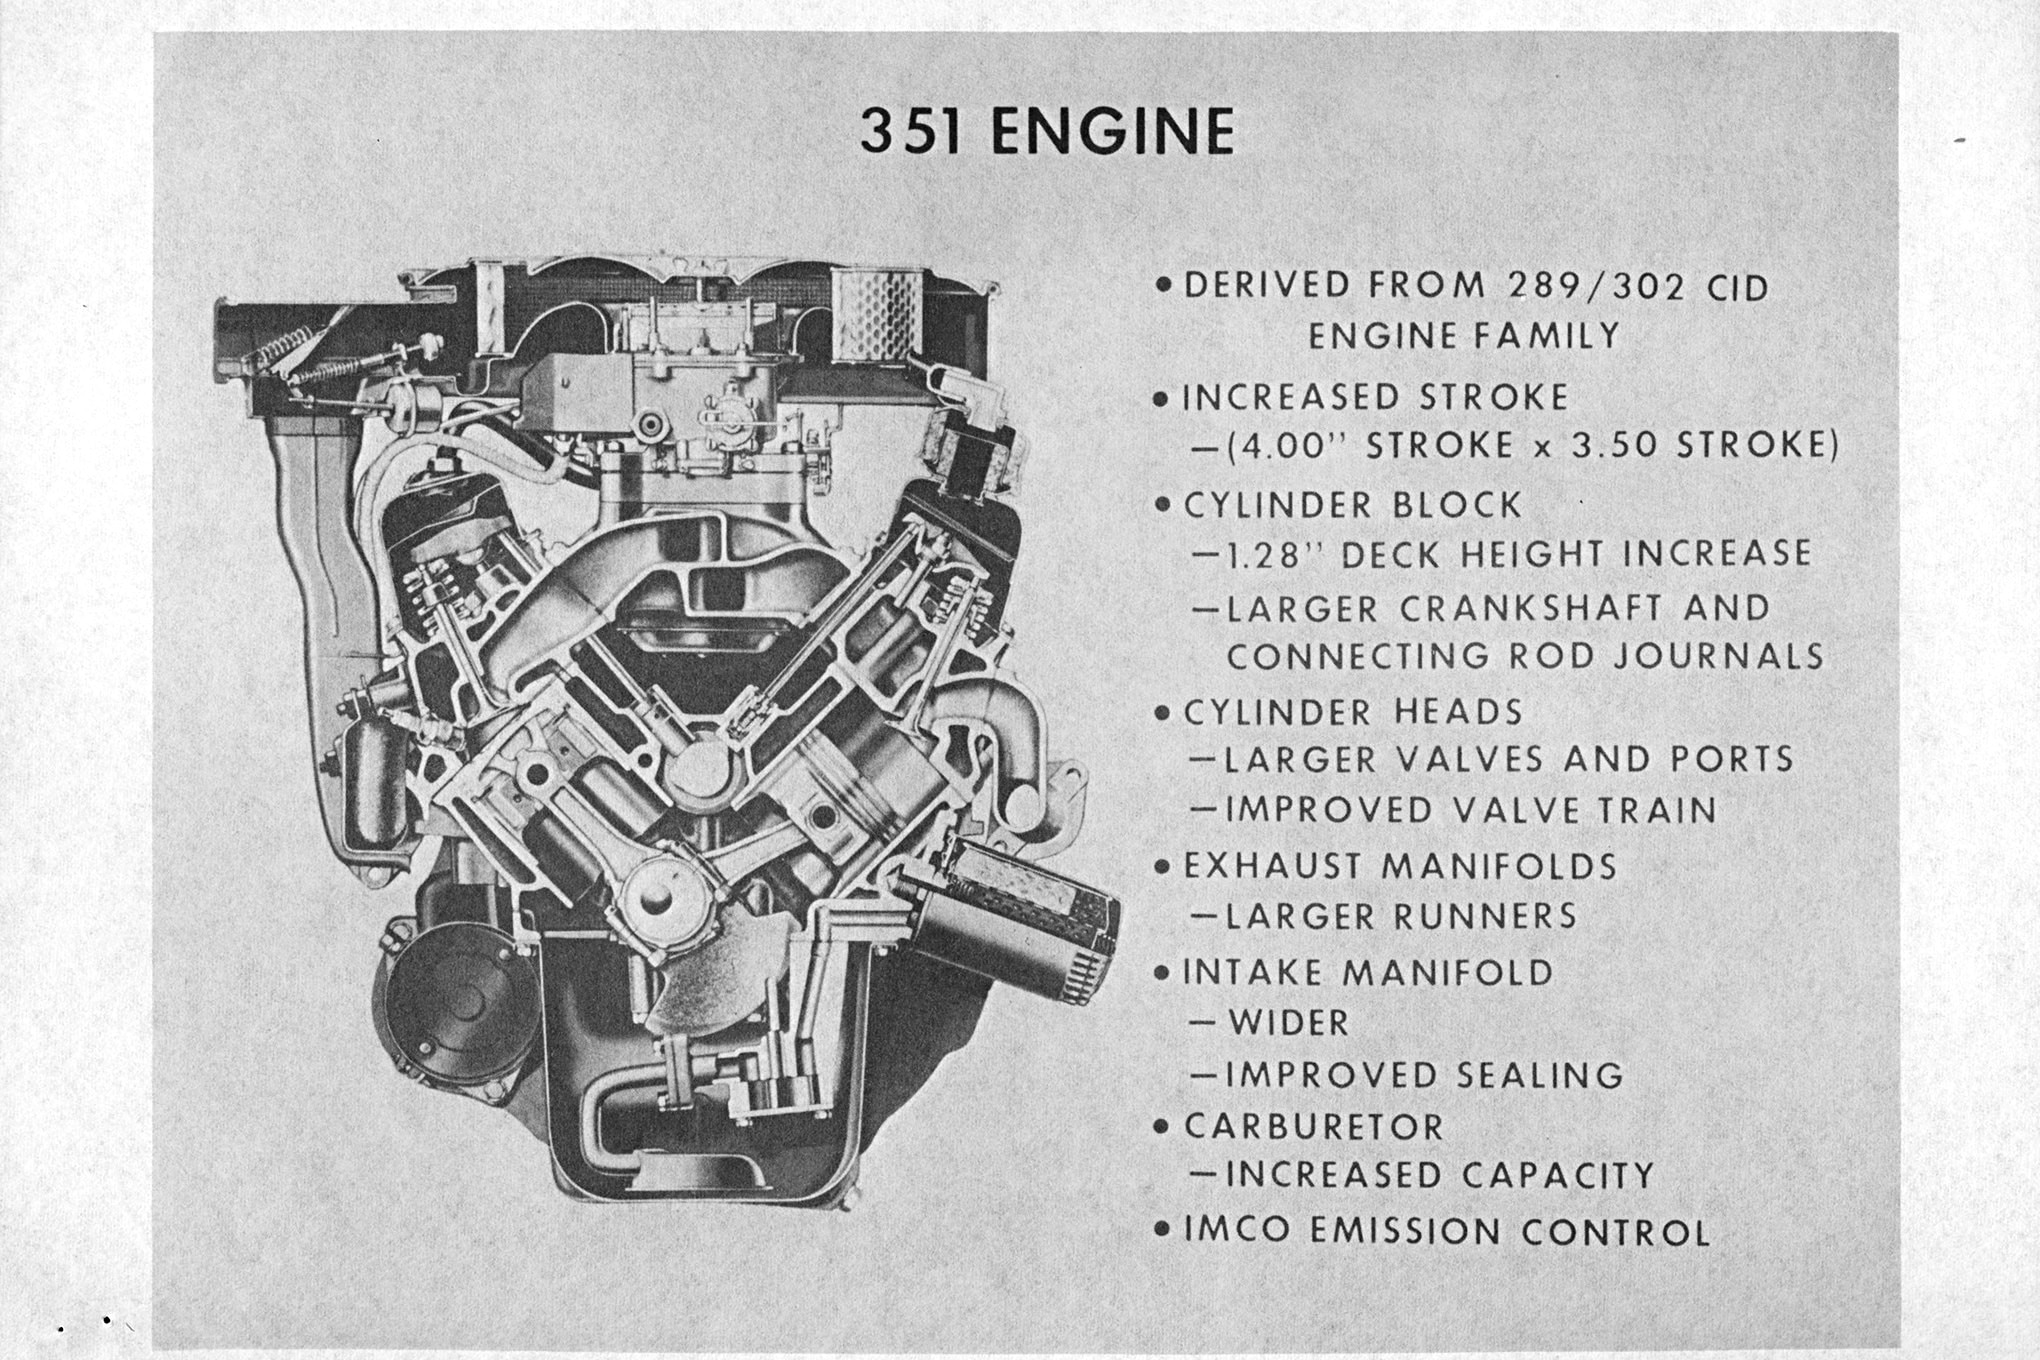 fk_8142] 1977 351 cleveland engine diagram download diagram  usnes adit none stica hapolo mohammedshrine librar wiring 101